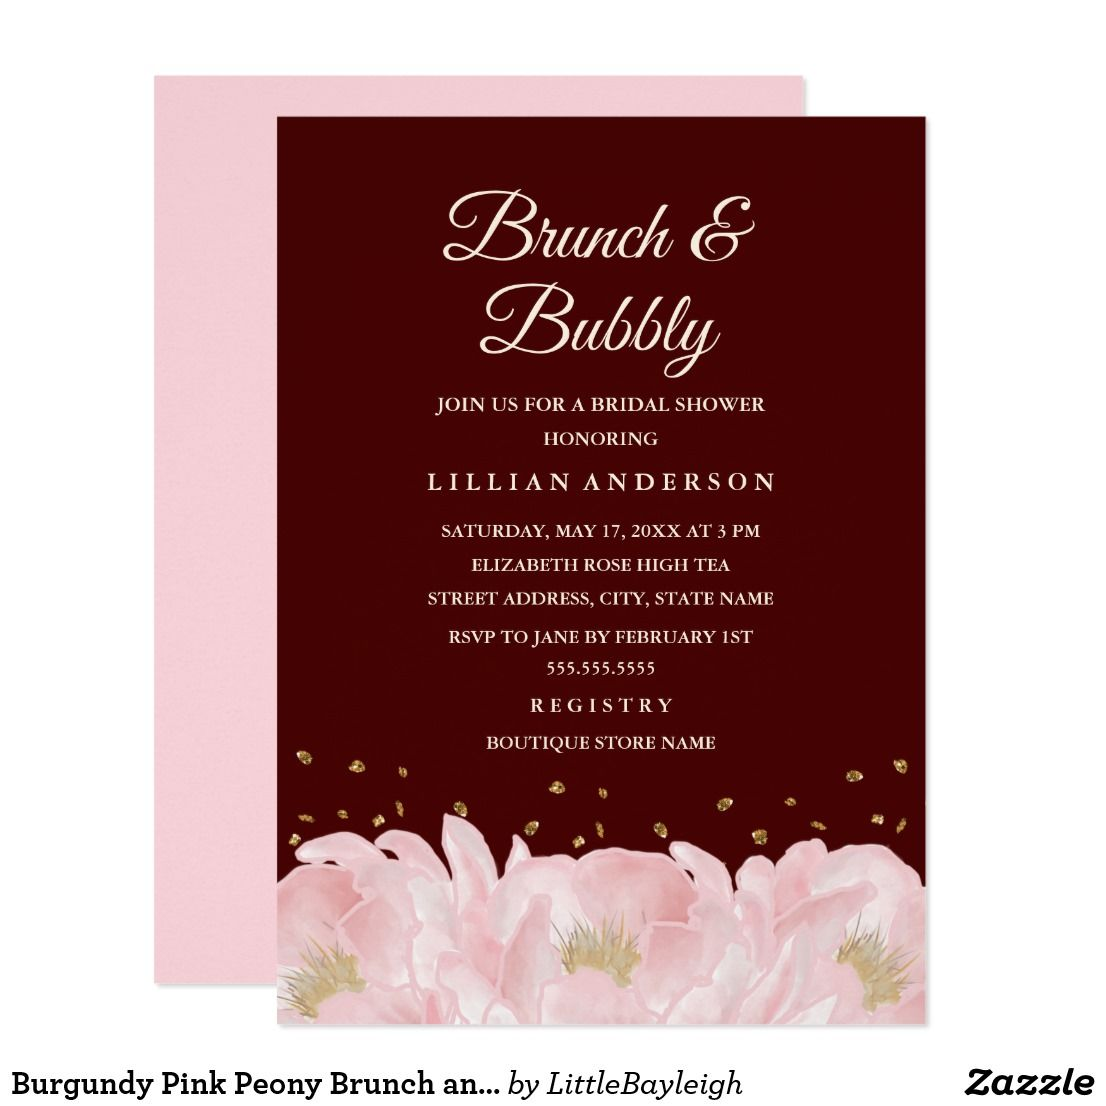 Burgundy Pink Peony Brunch and Bubbly Shower Card | Bridal Shower ...